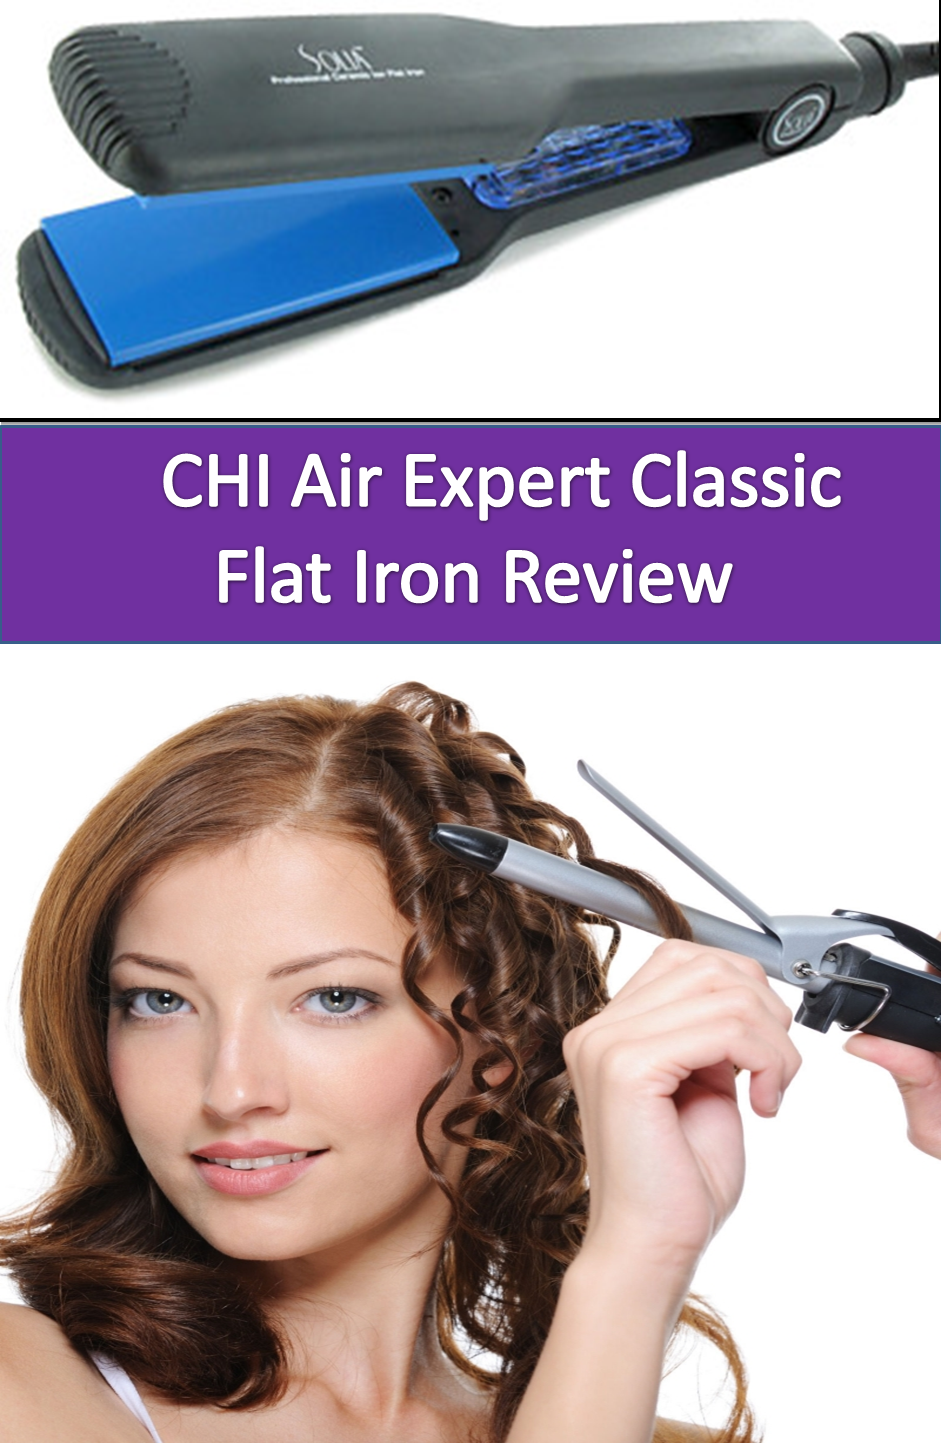 chi air expert classic flat iron review : wanna buy